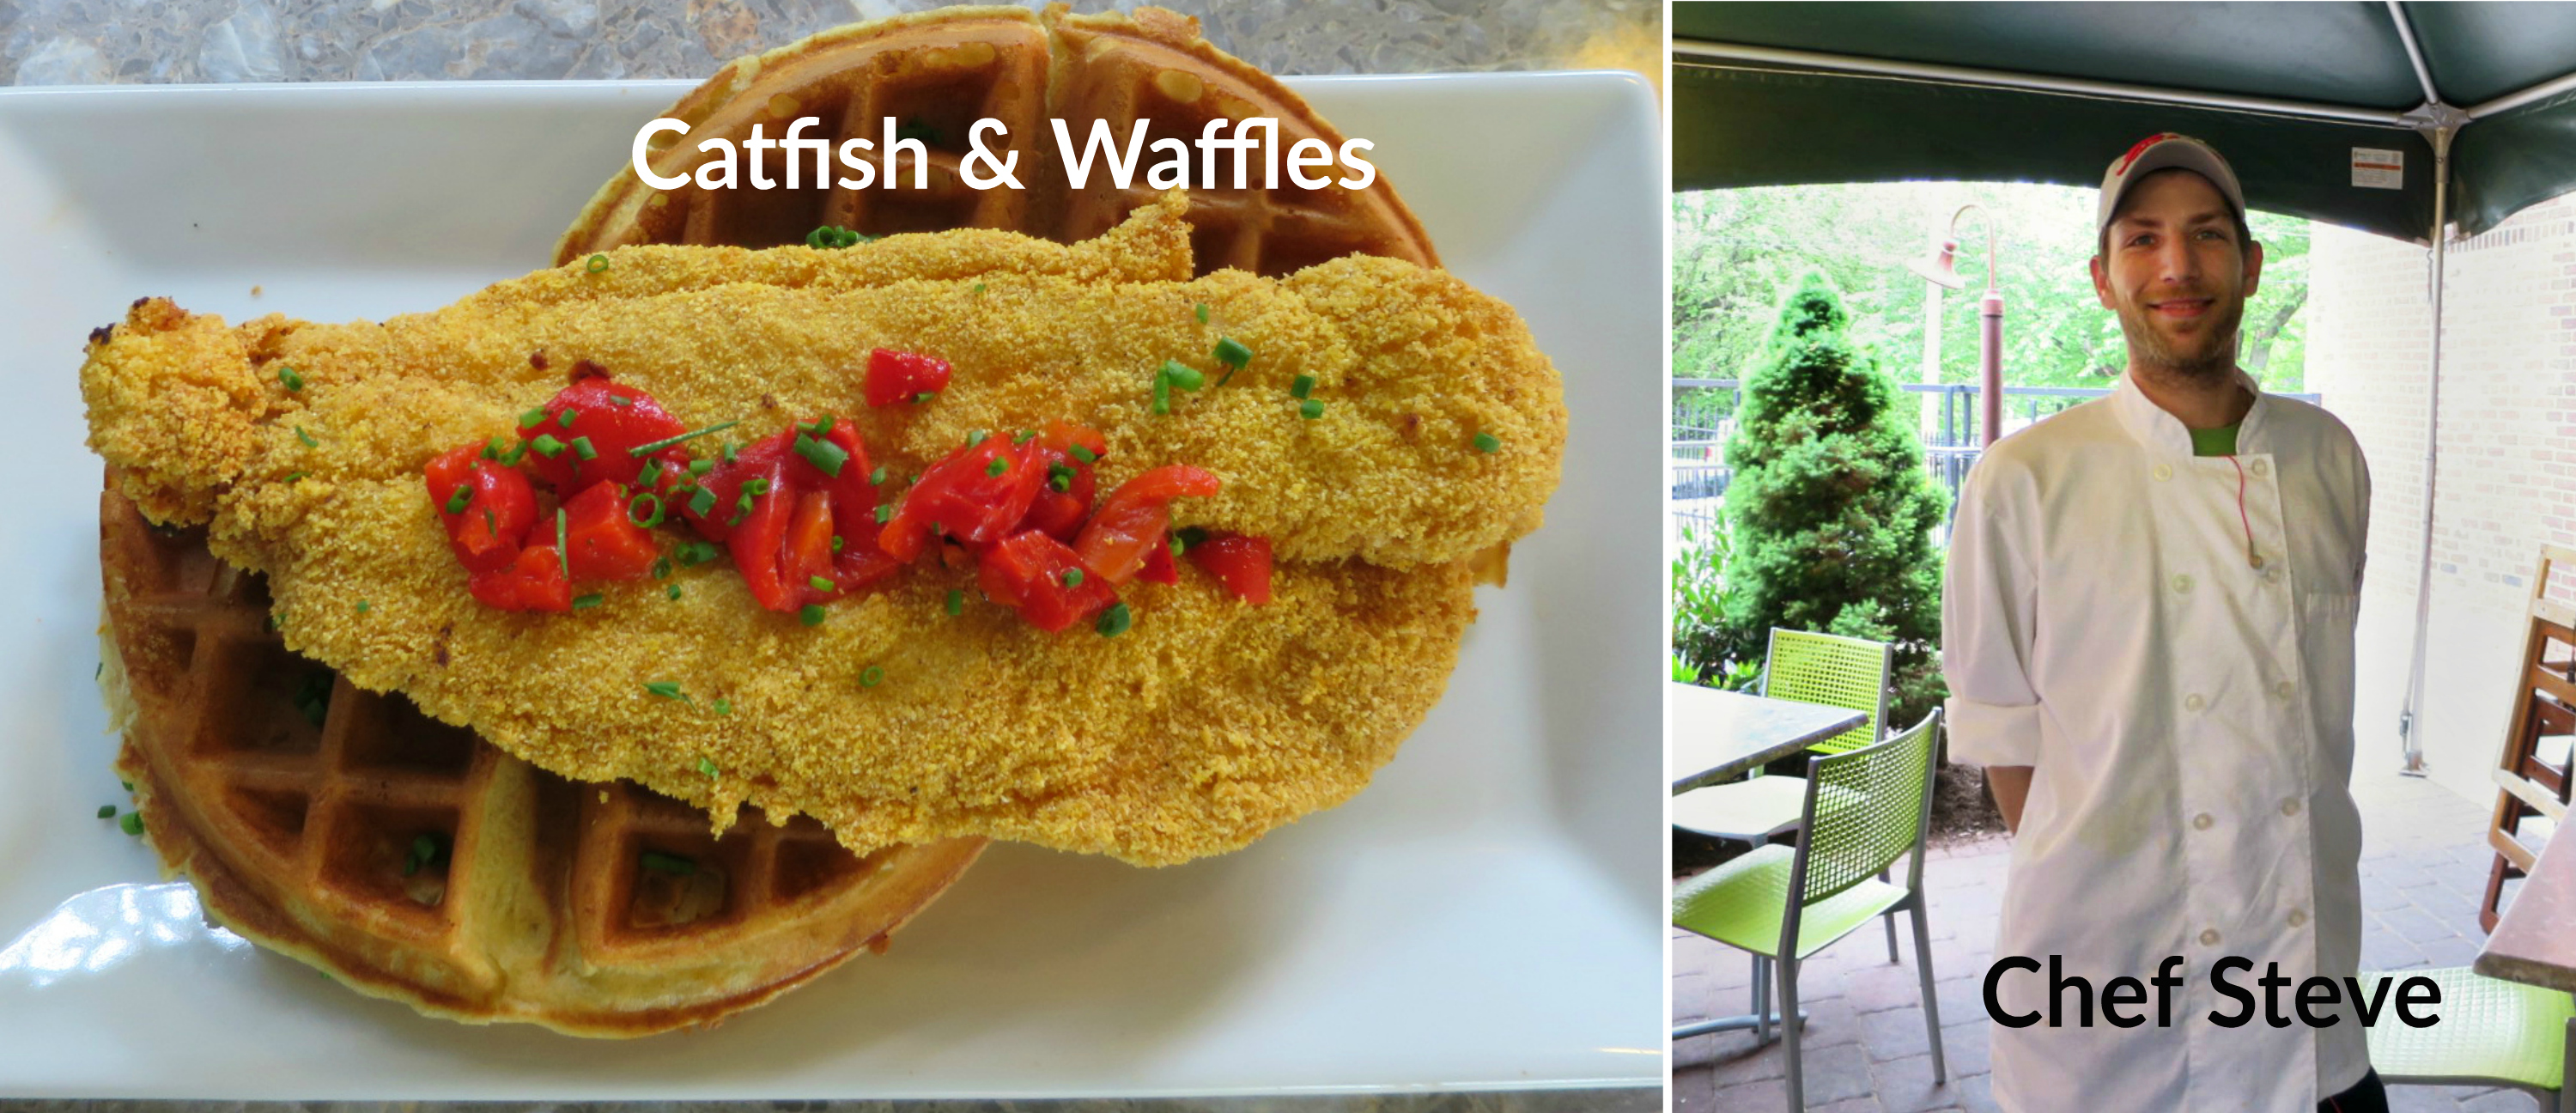 eastfallslocal-chef-steve-catfish-waffles-txt